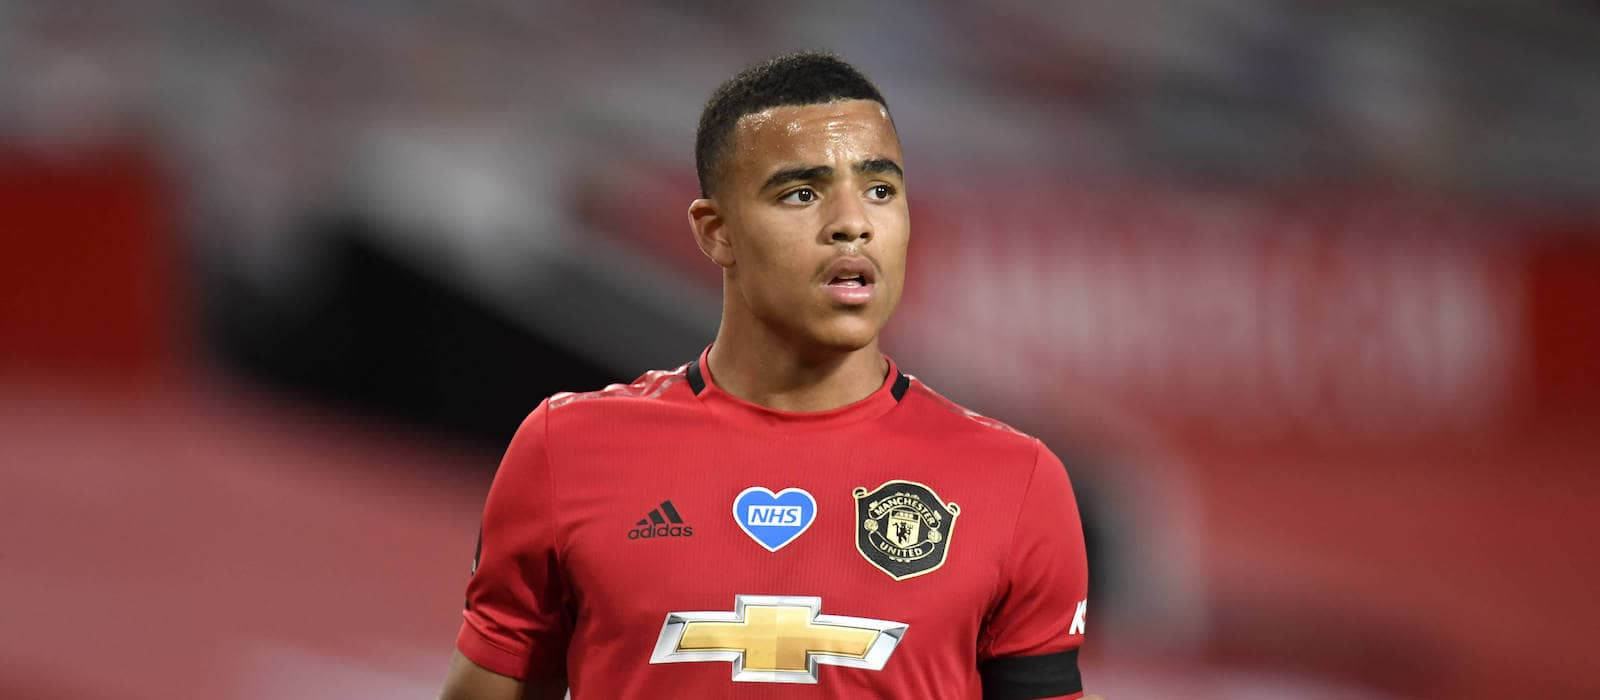 Mason Greenwood's absence is not due to illness, report says